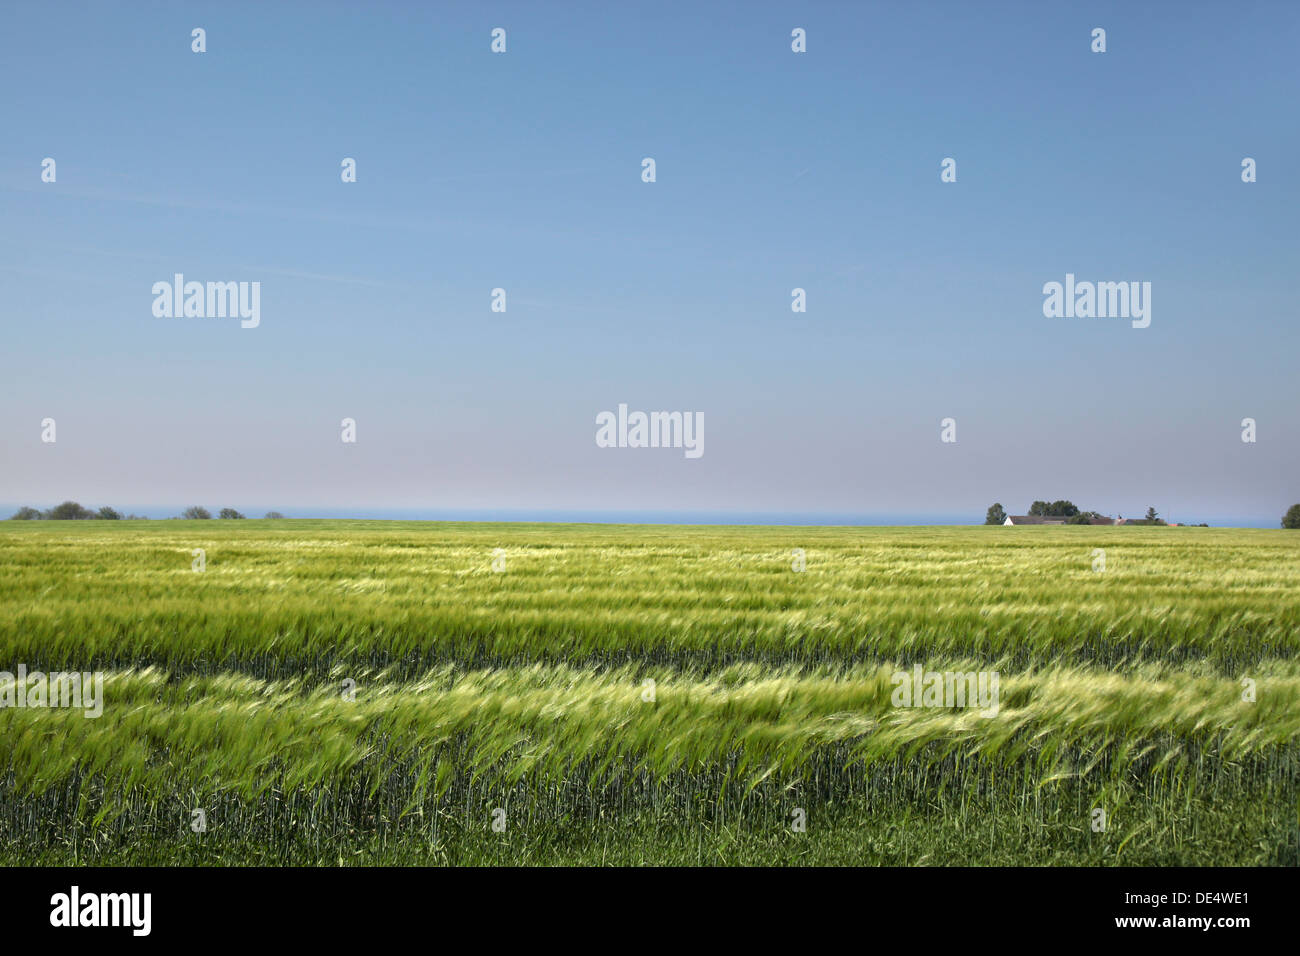 Field with green ears of corn near the sea on Bornholm, Denmark Stock Photo